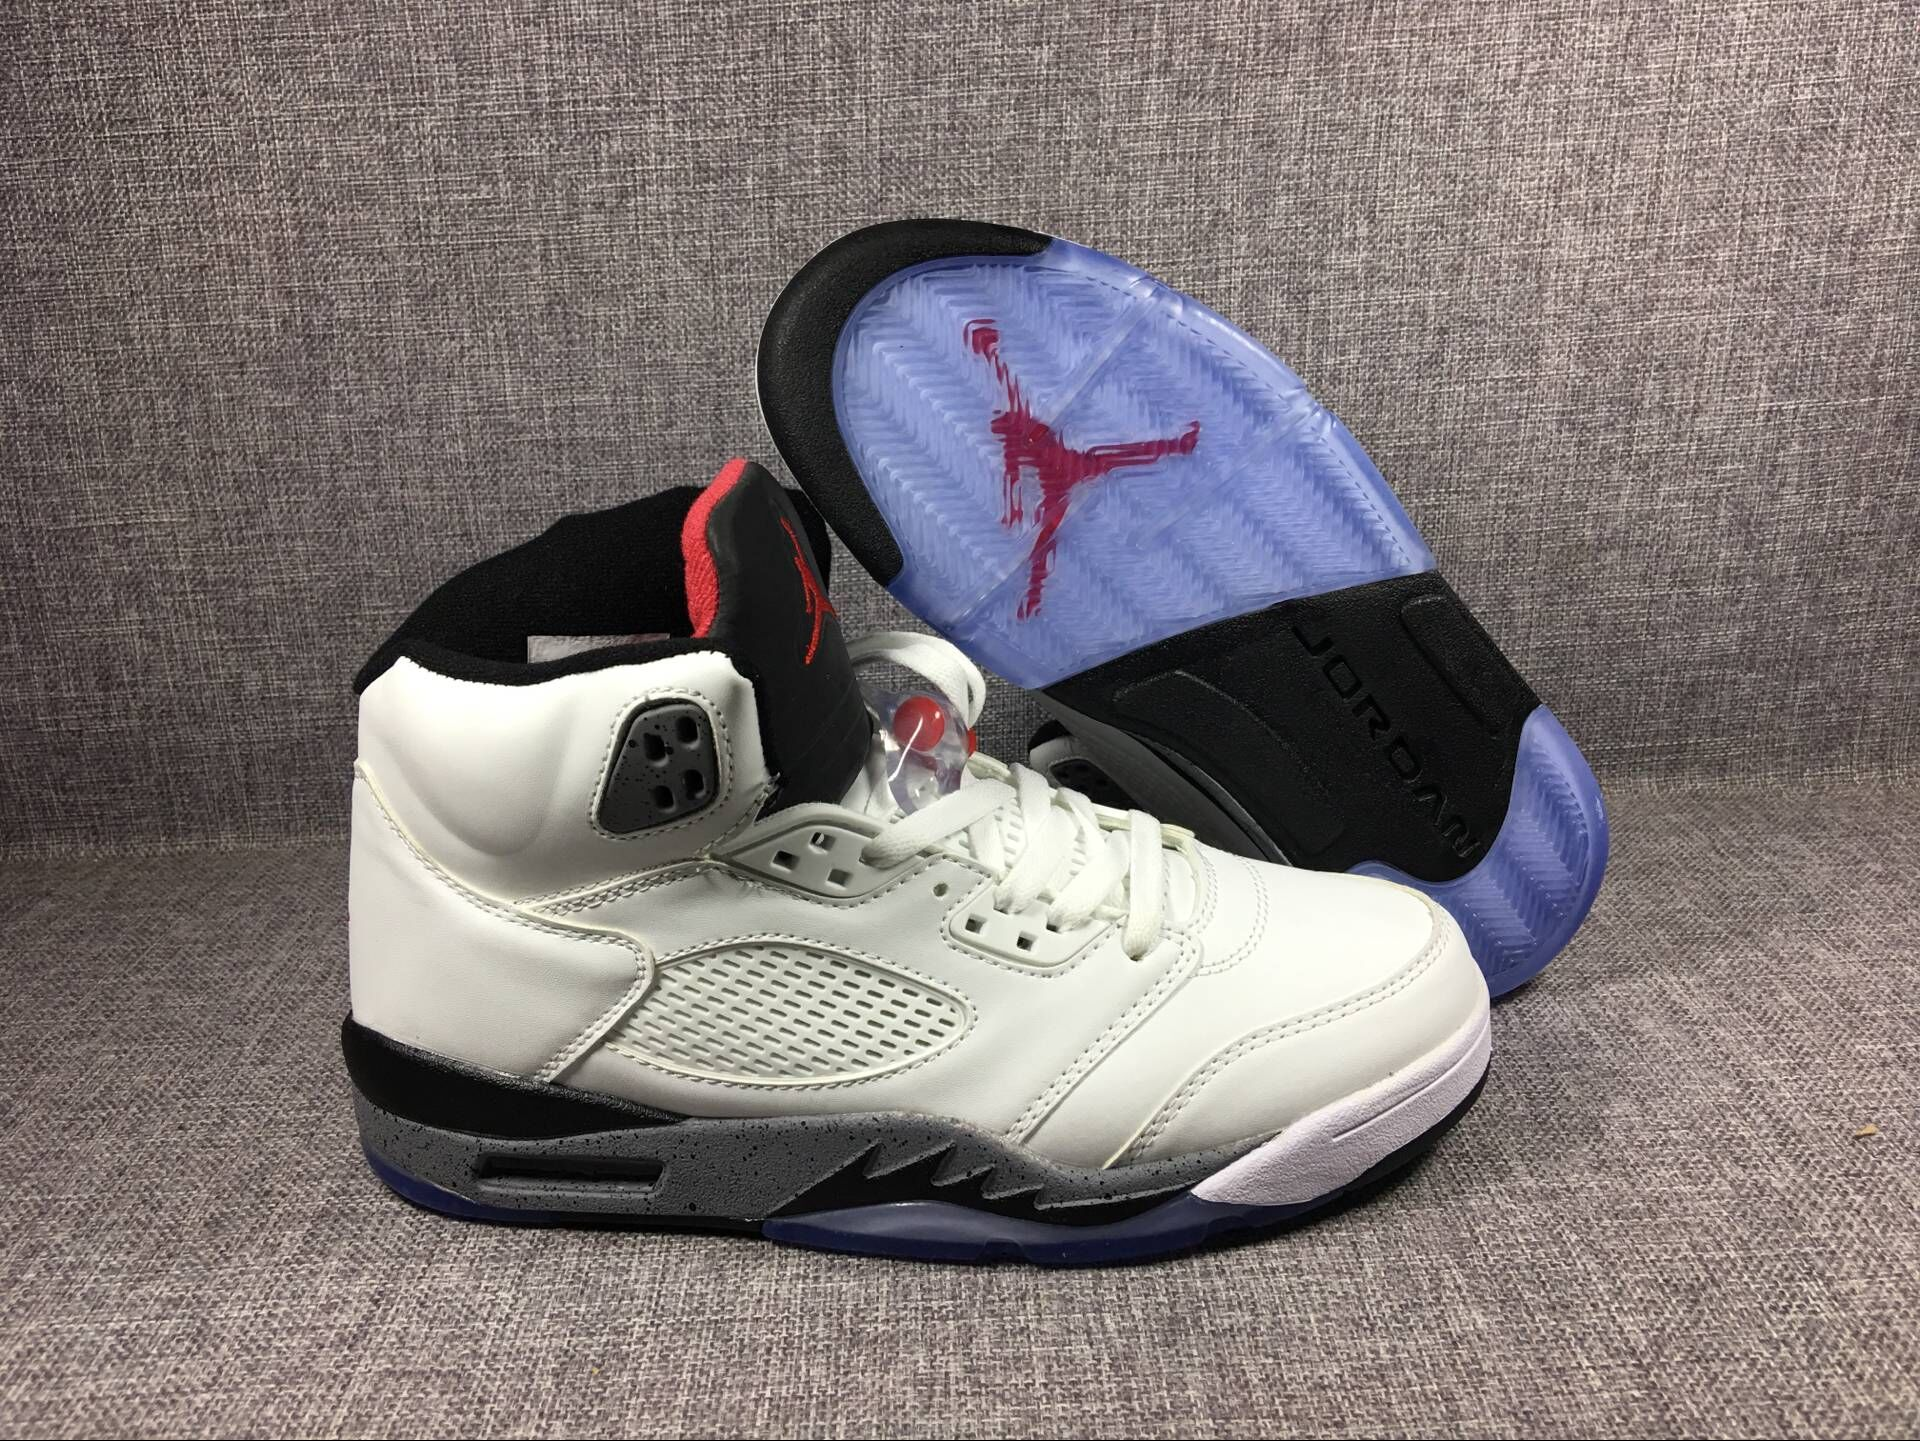 "Men's 2017 Air Jordan 5 Retro ""White Cement"" Shoes"